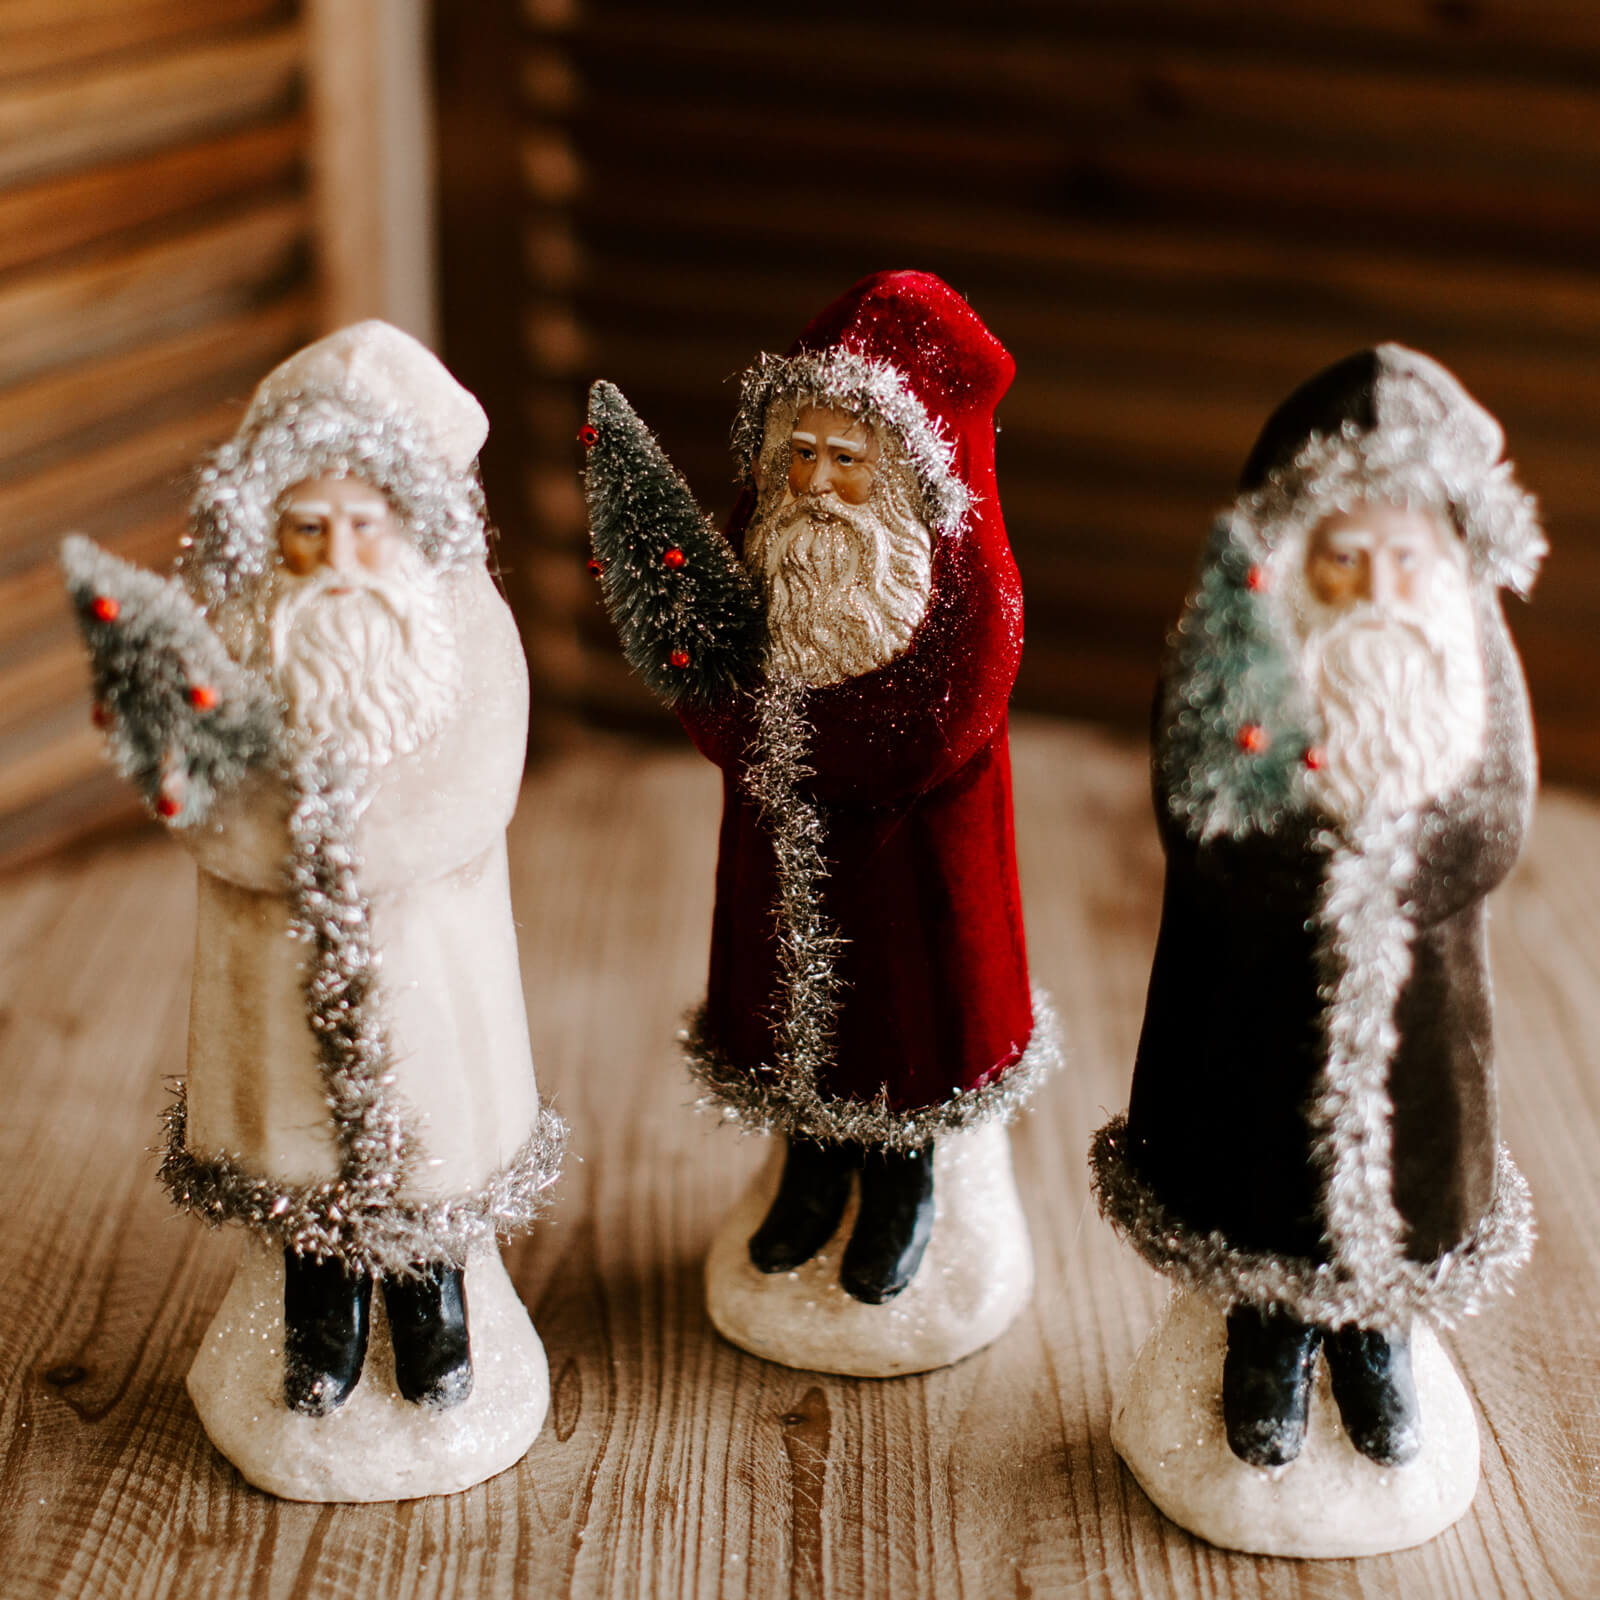 Three 12 and half inch Belsnickle figurines, one with a white coat, one with a red coat and one charcoal coat with tinsel trim and light glitter details